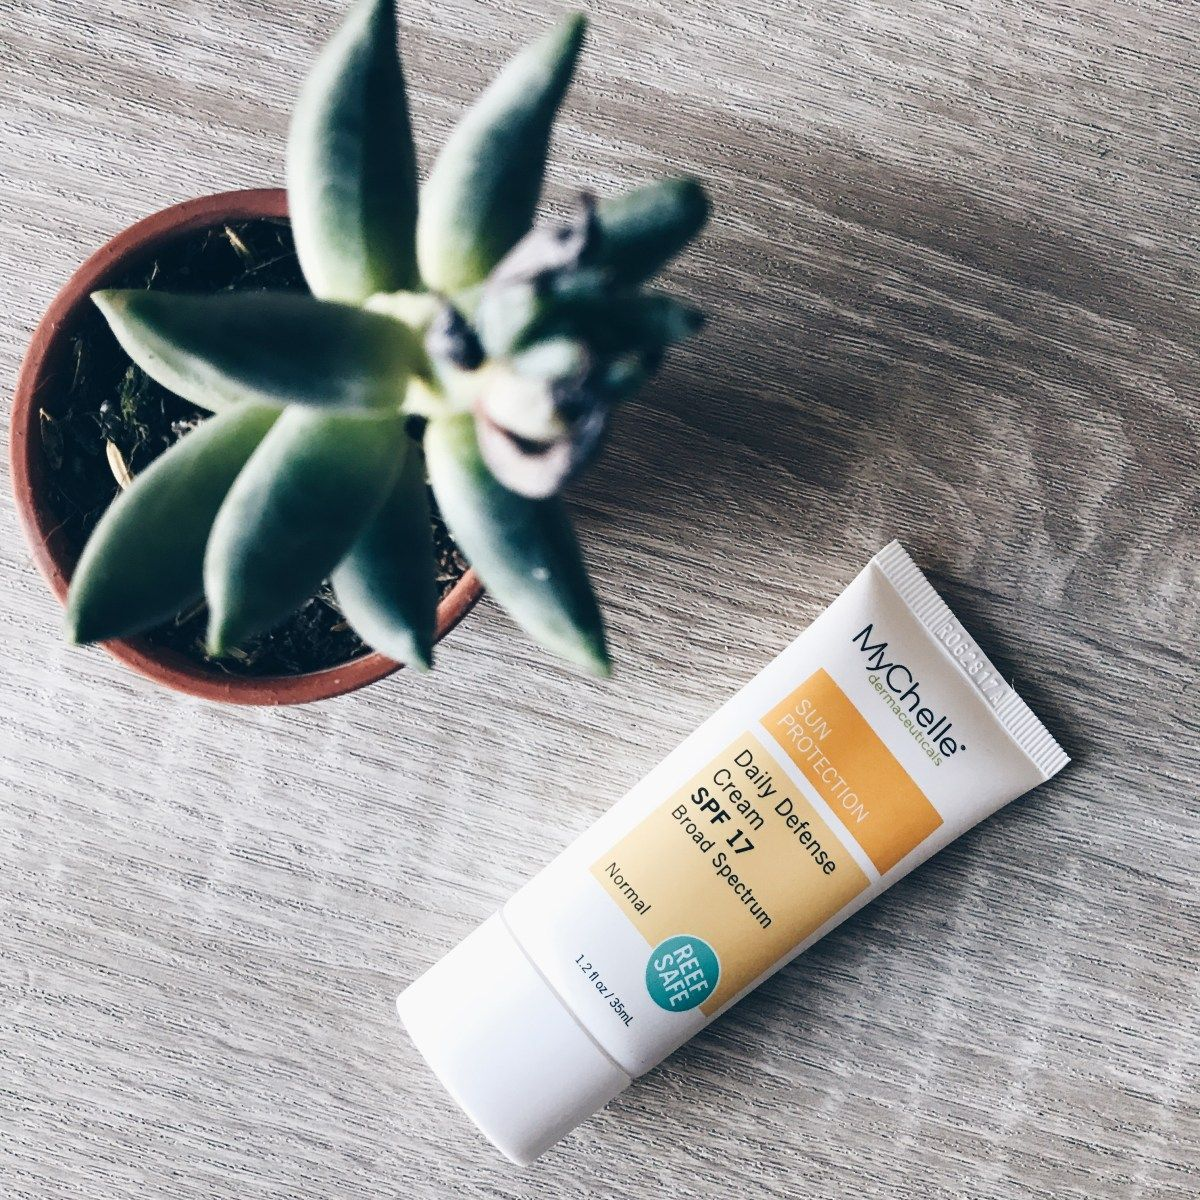 SkinCare + Whole Foods = Complexion Bliss Skin care